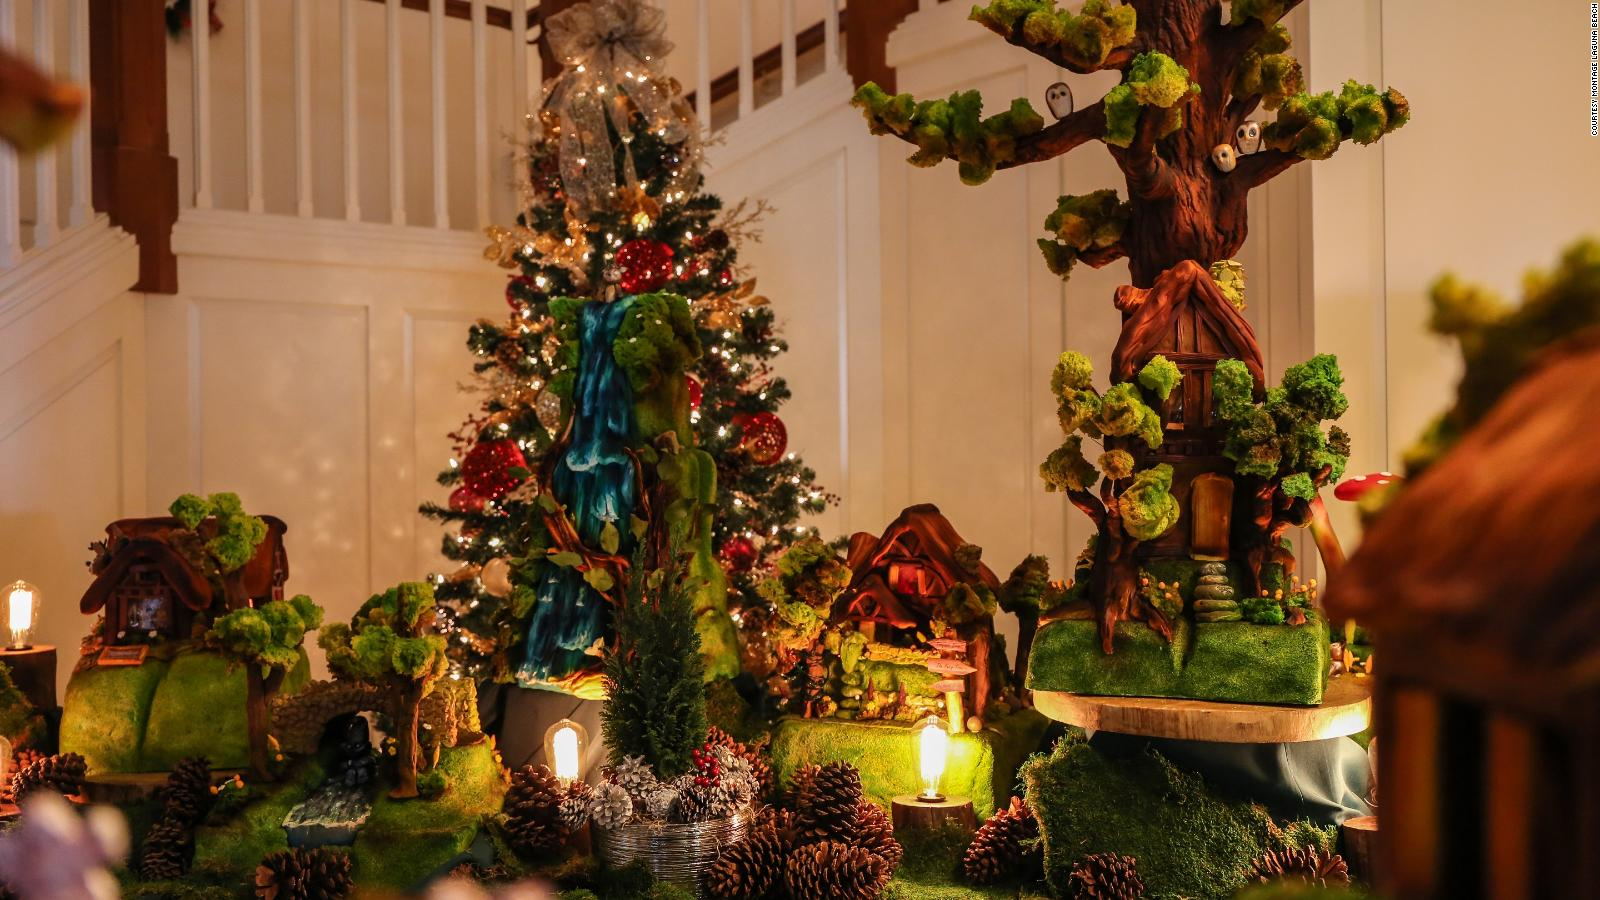 Hotels At Christmas 15 That Go All Out For The Holidays Cnn Travel